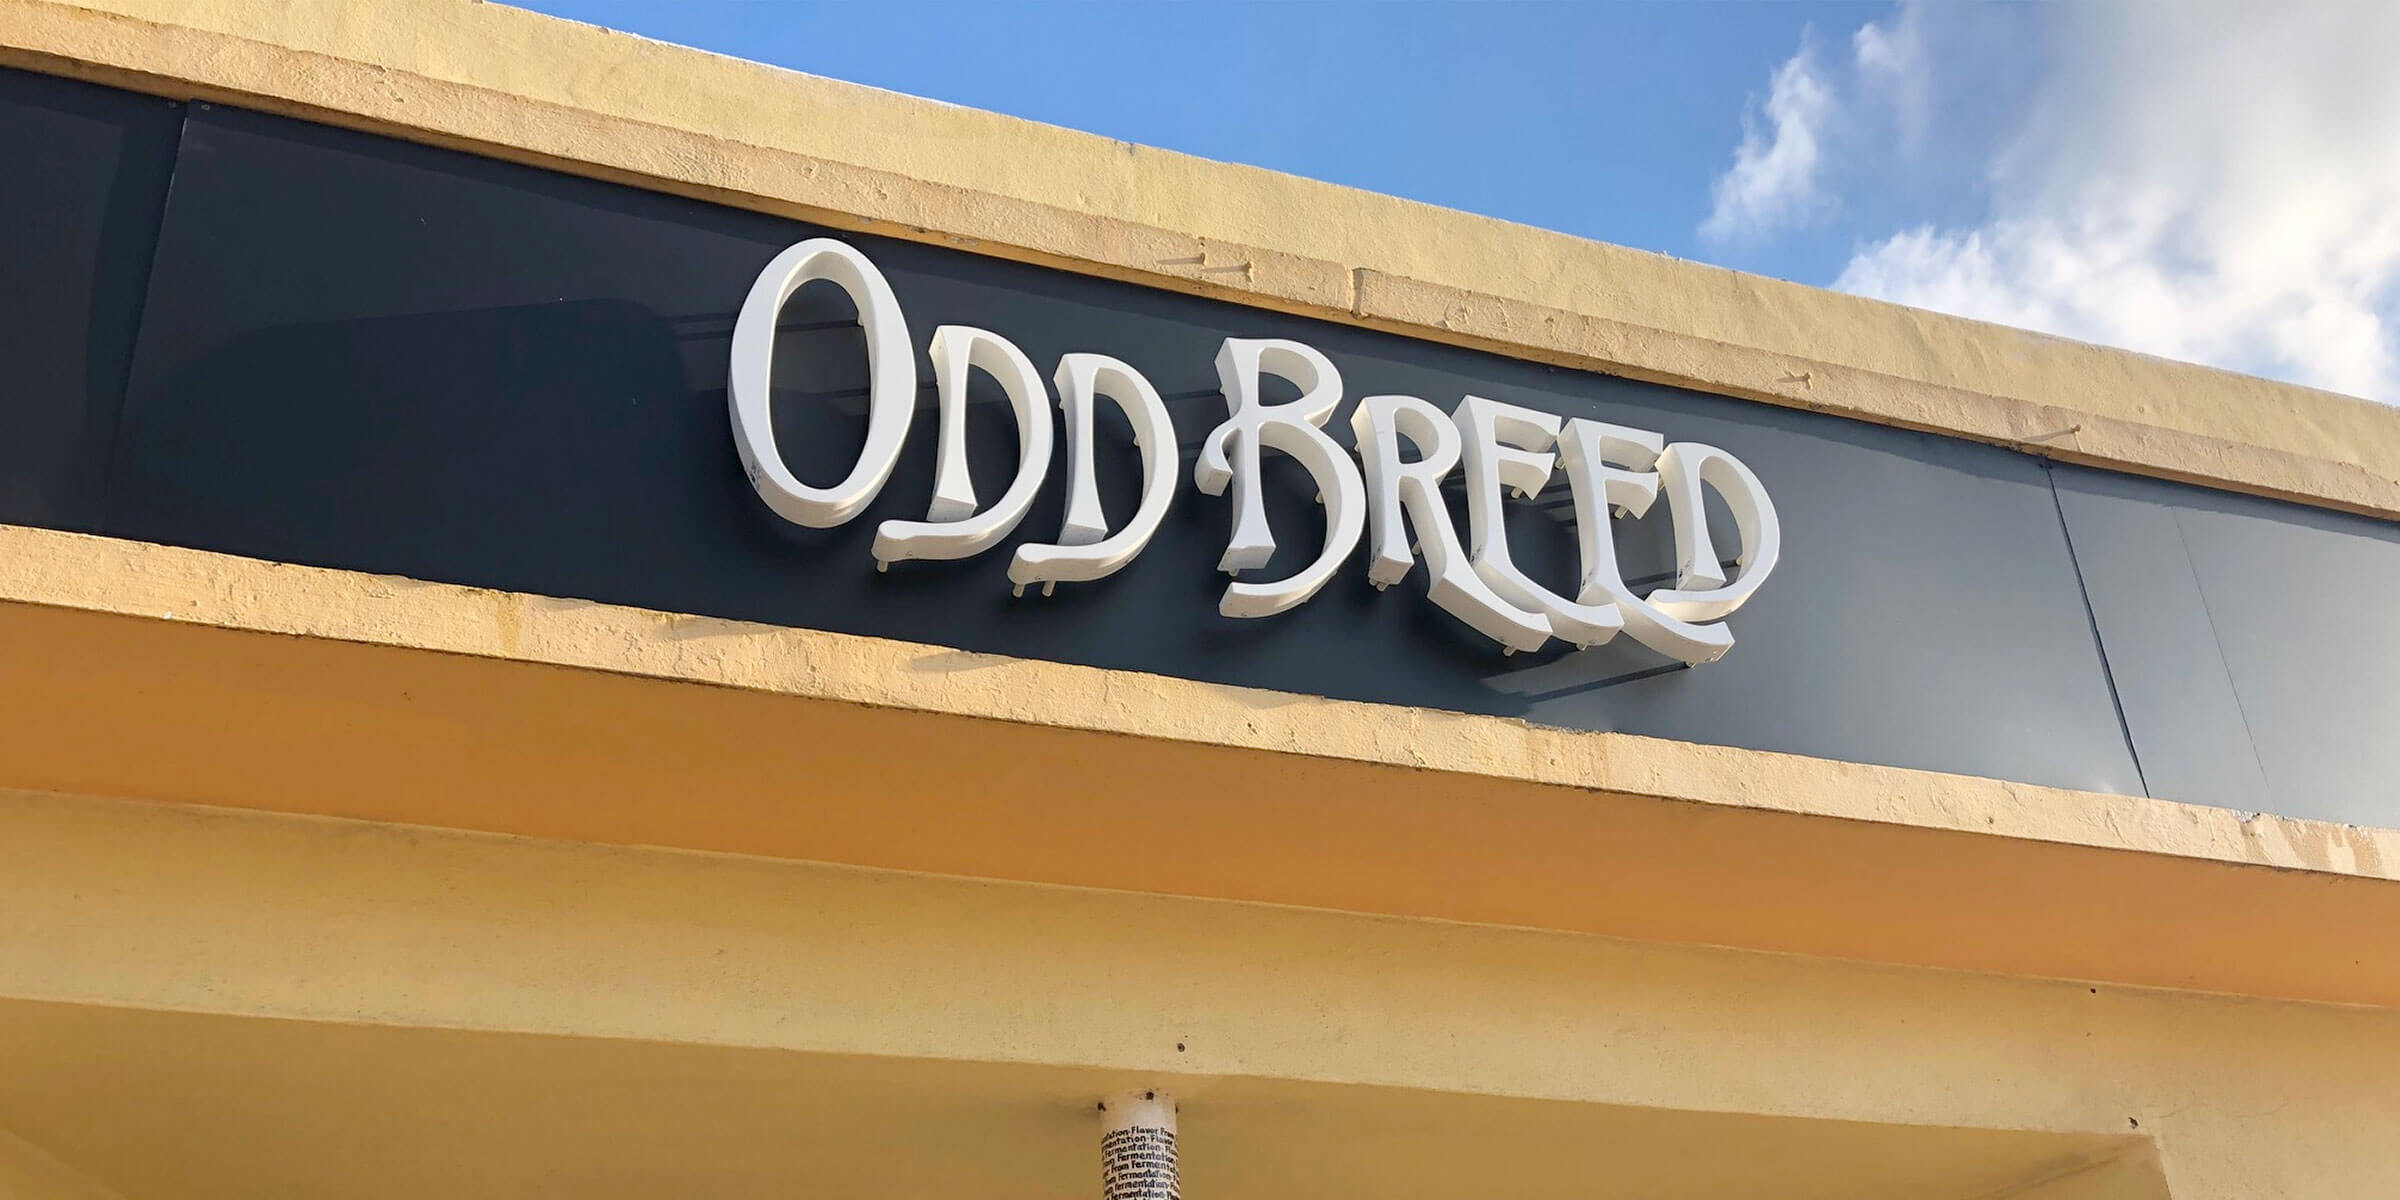 Signage above the entrance to Odd Breed Wild Ales in Pompano Beach, Florida